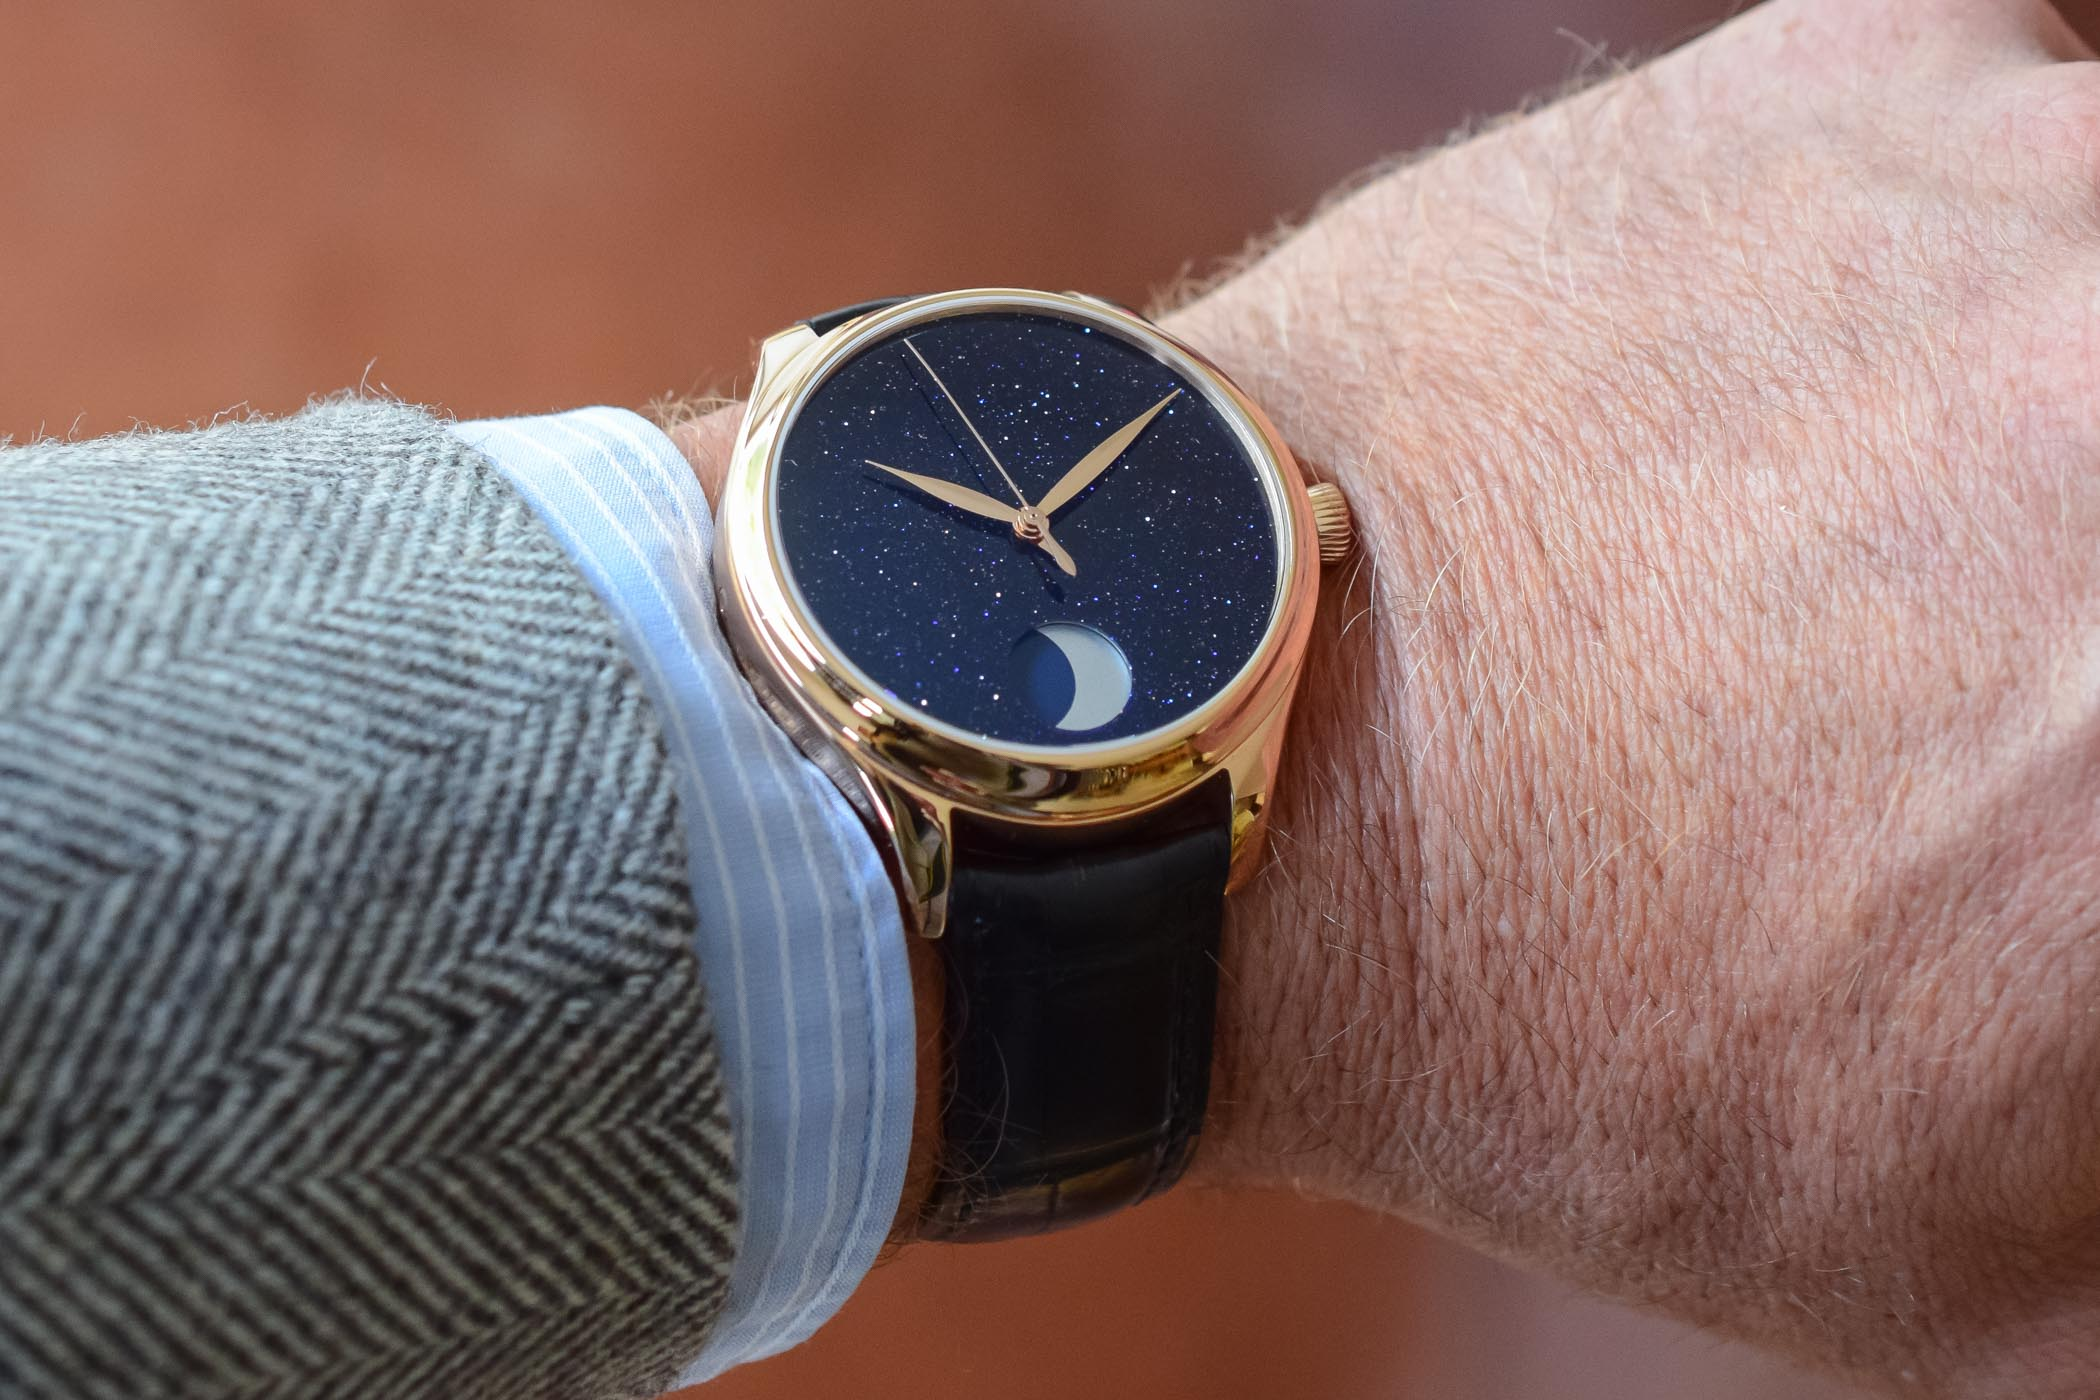 https://k8q7r7a2.stackpathcdn.com/wp-content/uploads/2019/10/H.-Moser-Cie-Endeavour-Perpetual-Moon-Concept-Aventurine-Hands-On-1.jpg